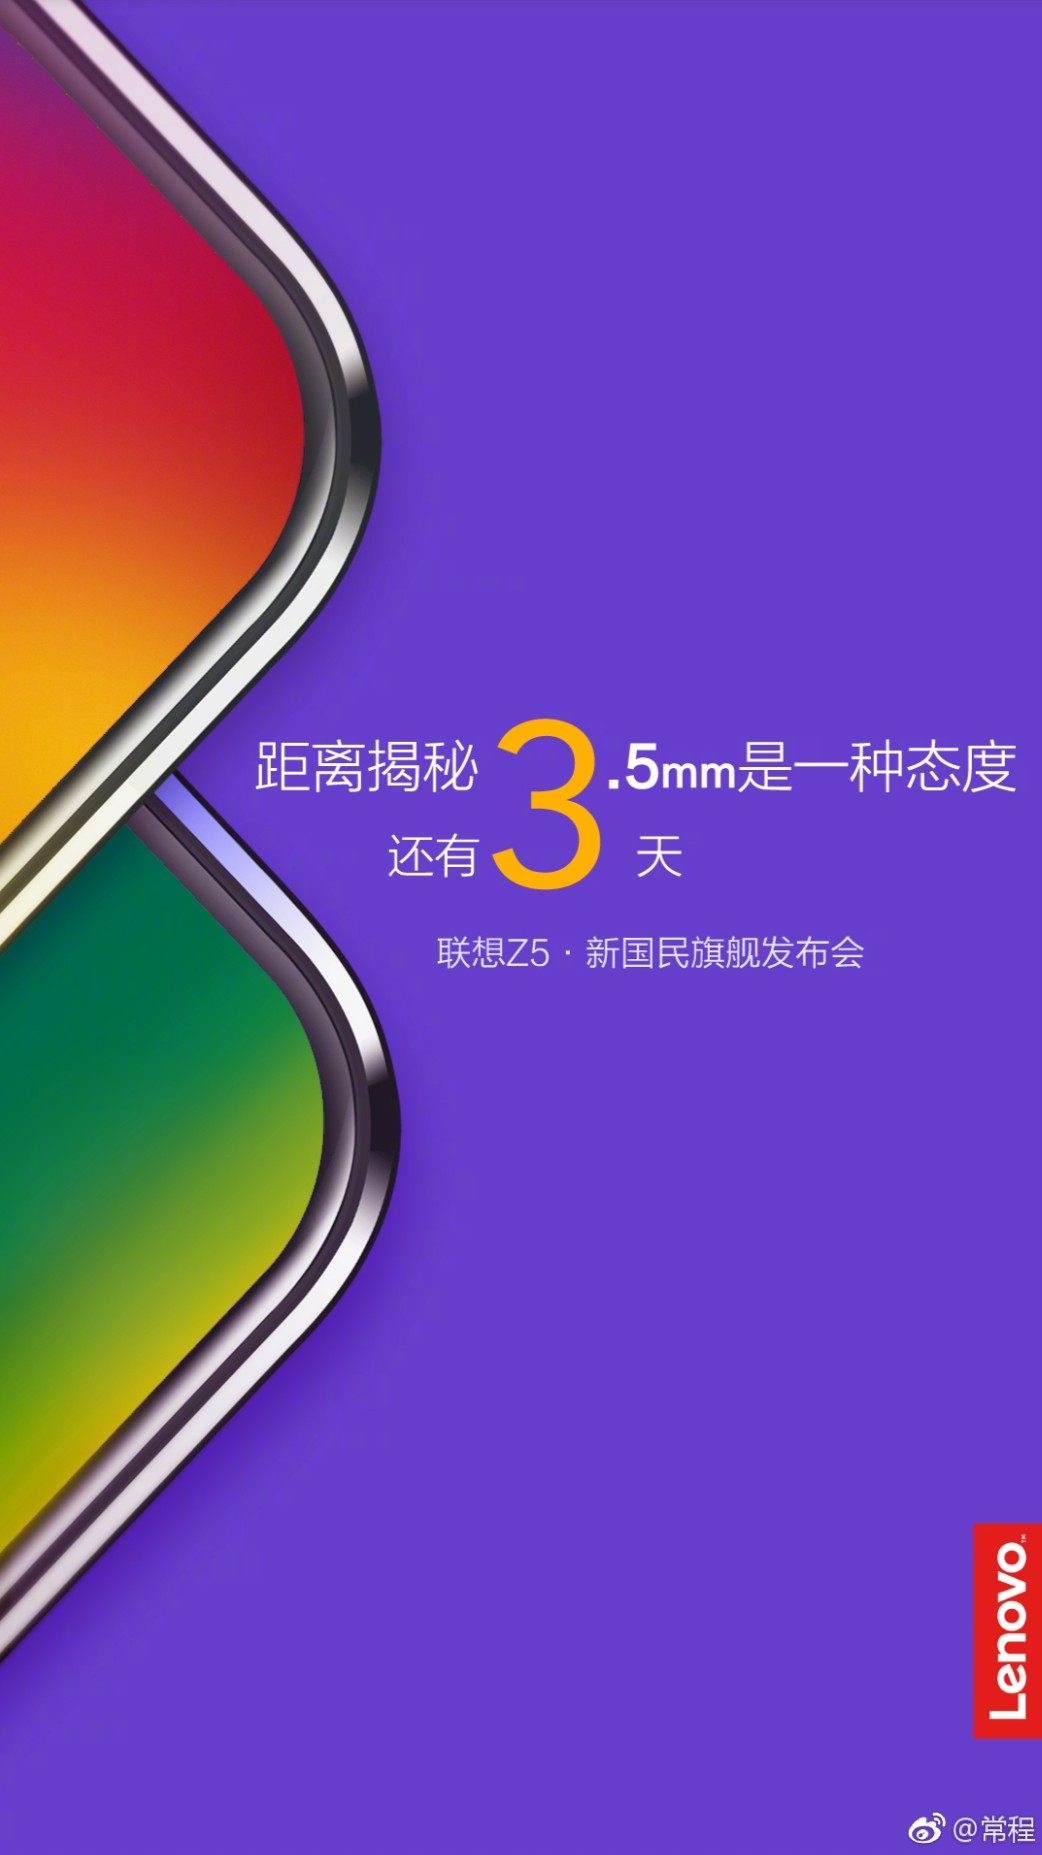 Promotional Banner Image from Lenovo